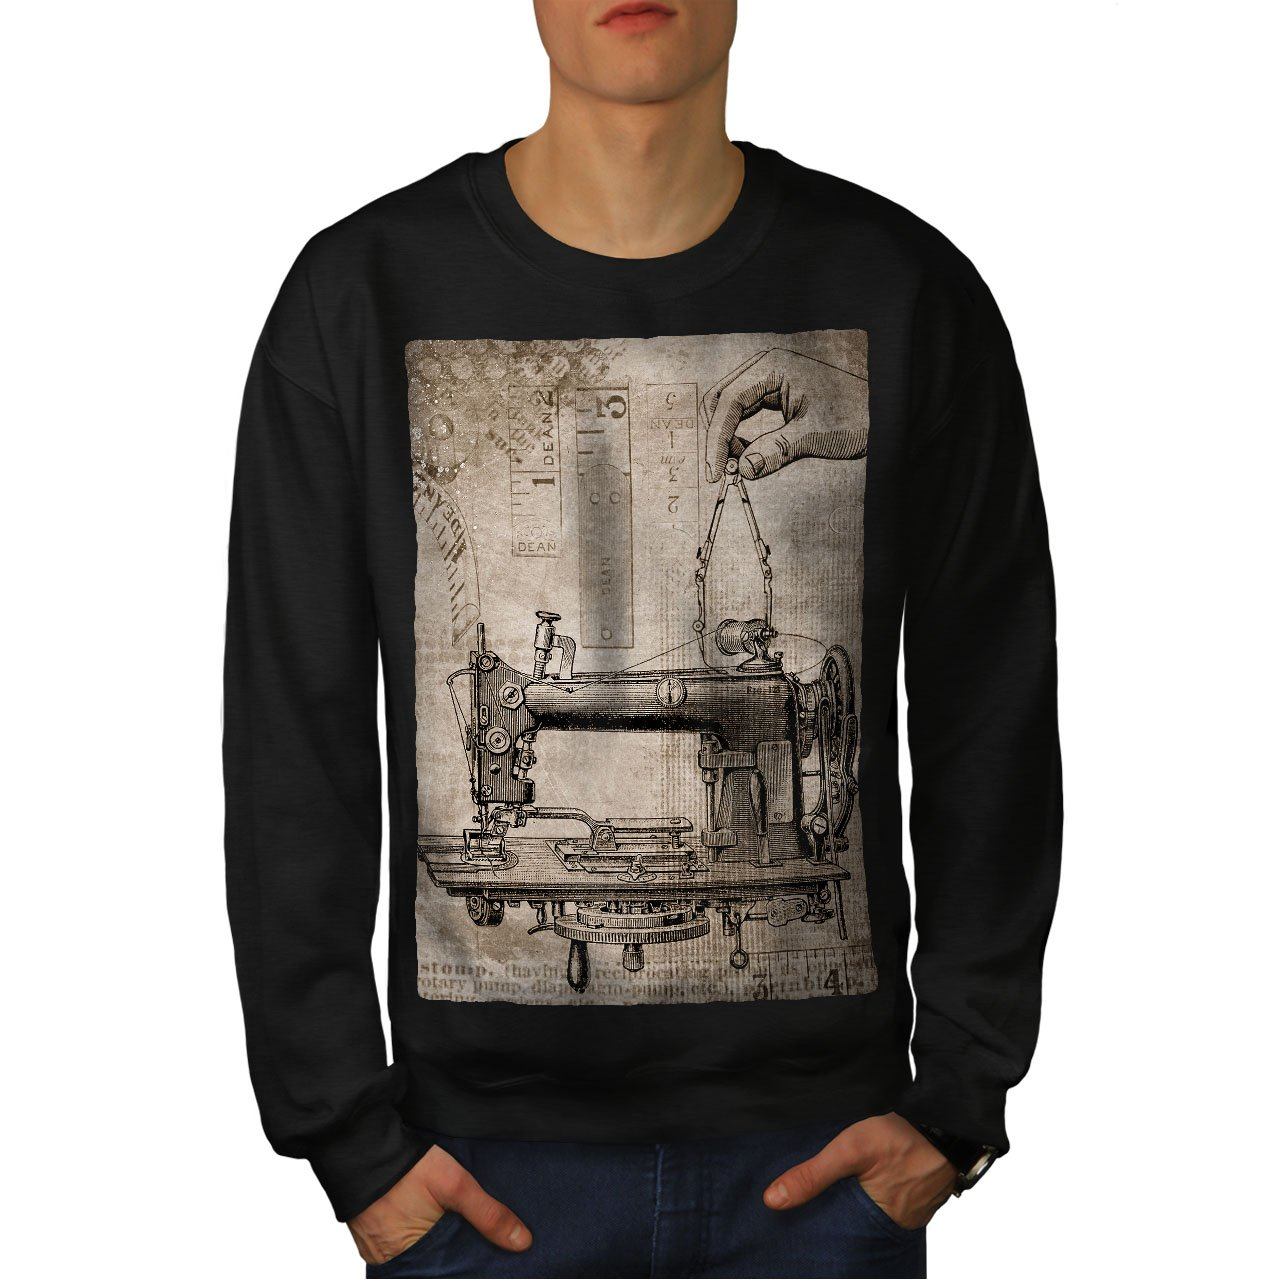 wellcoda Sewing Machine Mens Sweatshirt Mechanical Casual Jumper